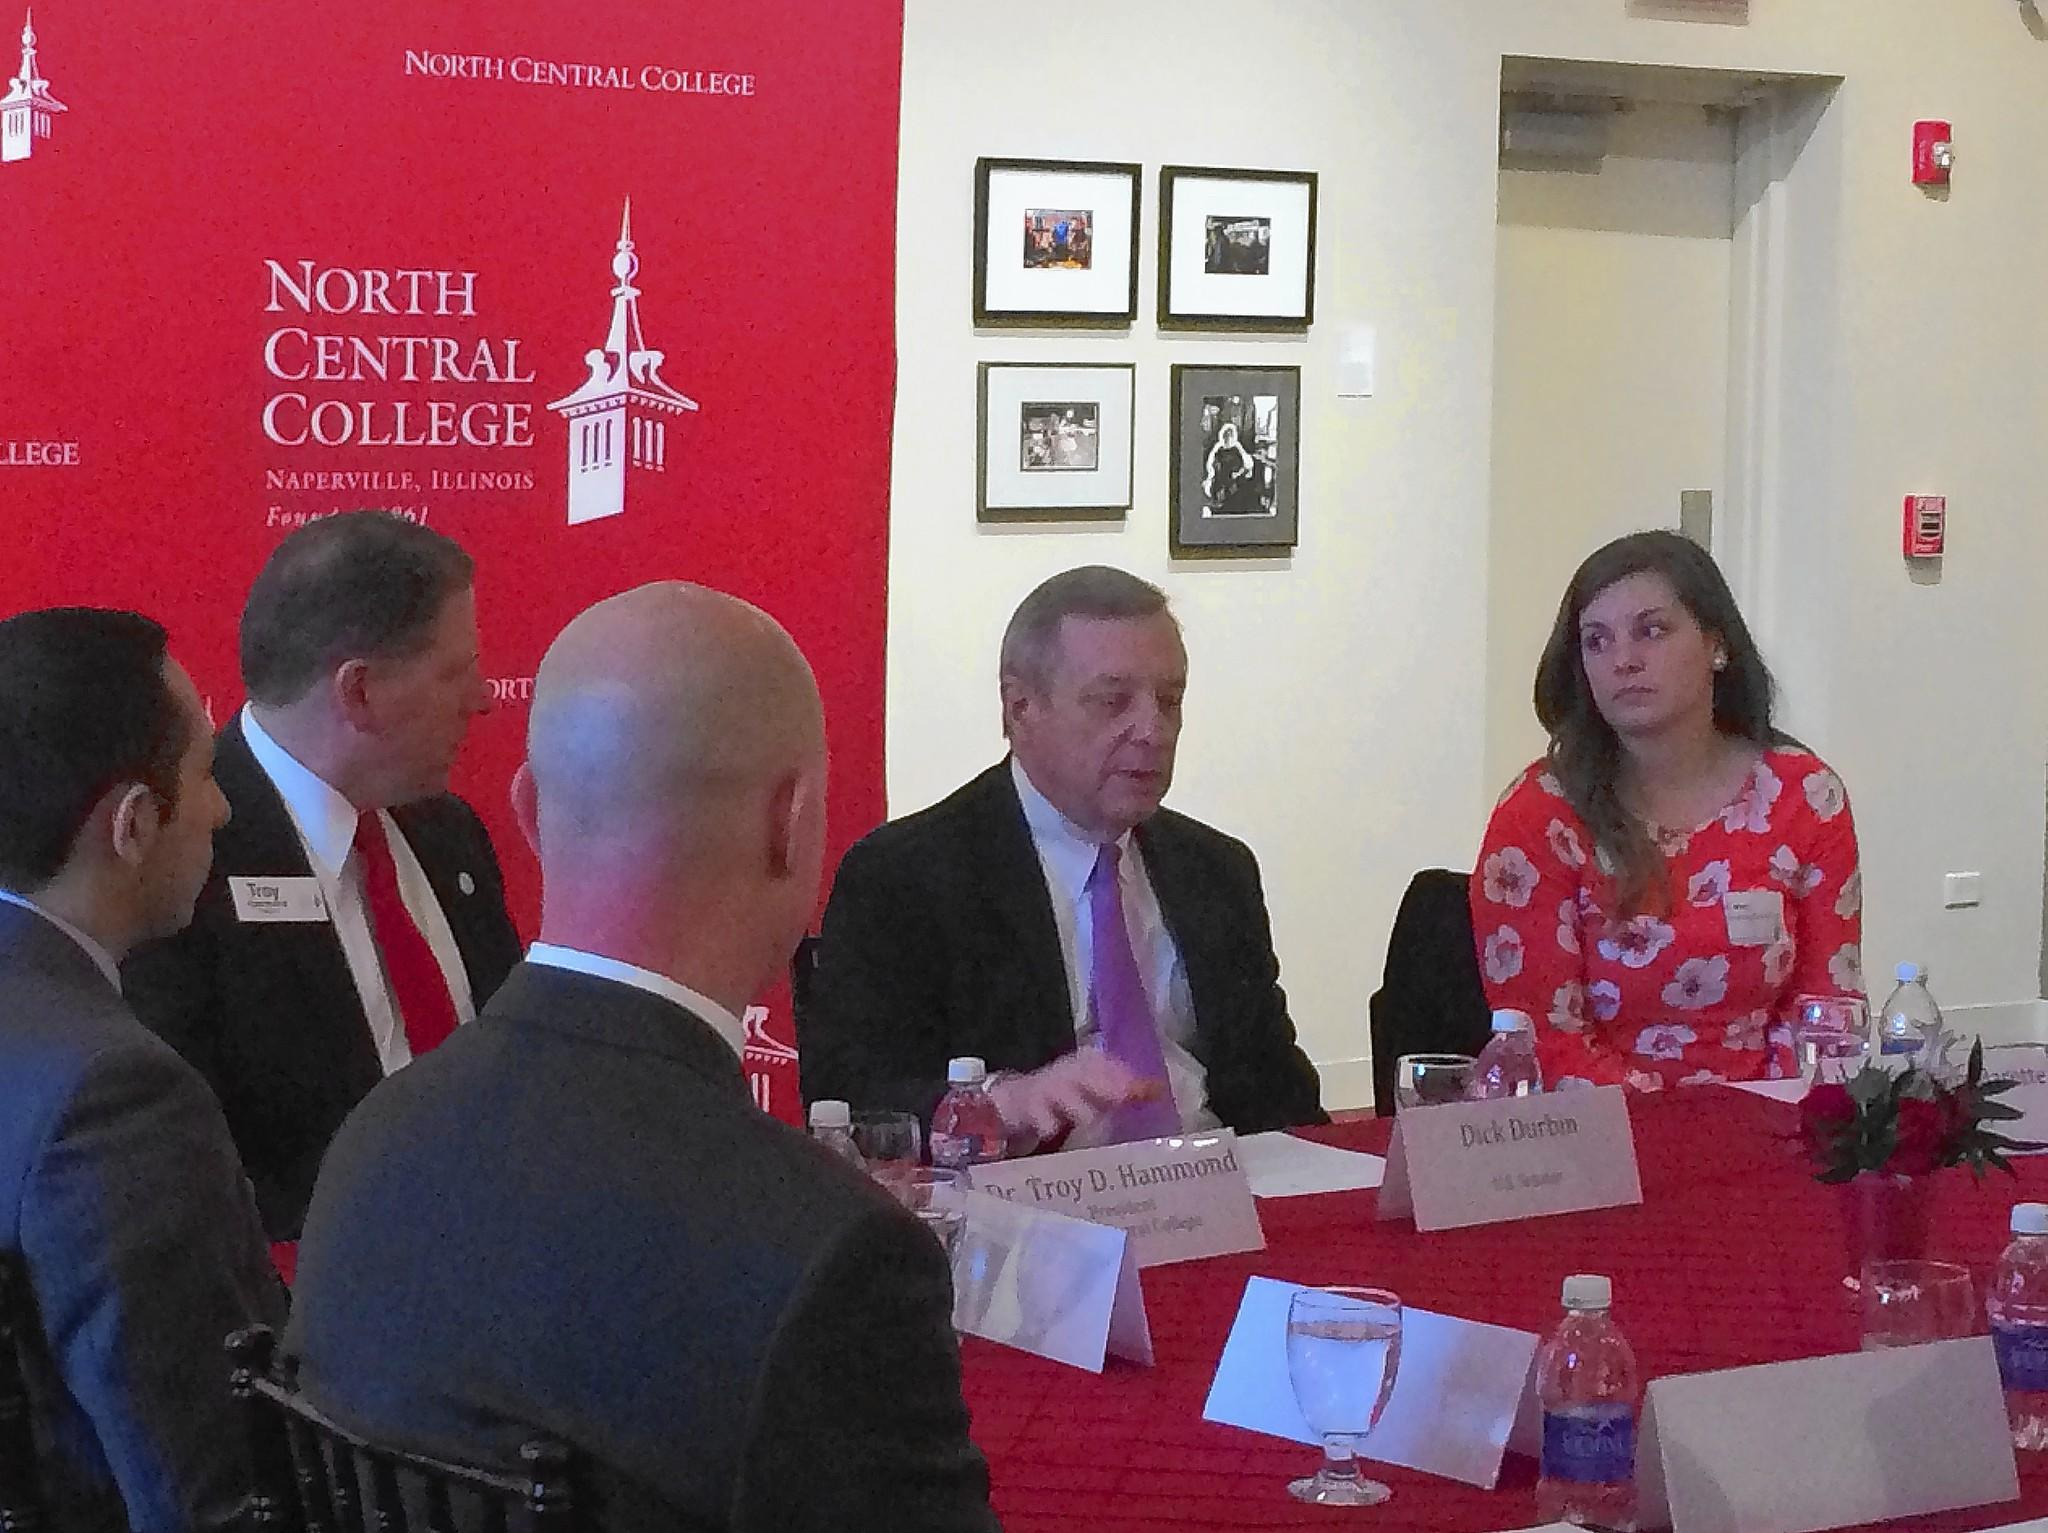 U.S. Sen. Dick Durbin, center, discusses legislation to help lower student loan debt during a visit May 15 to North Central College in Naperville.